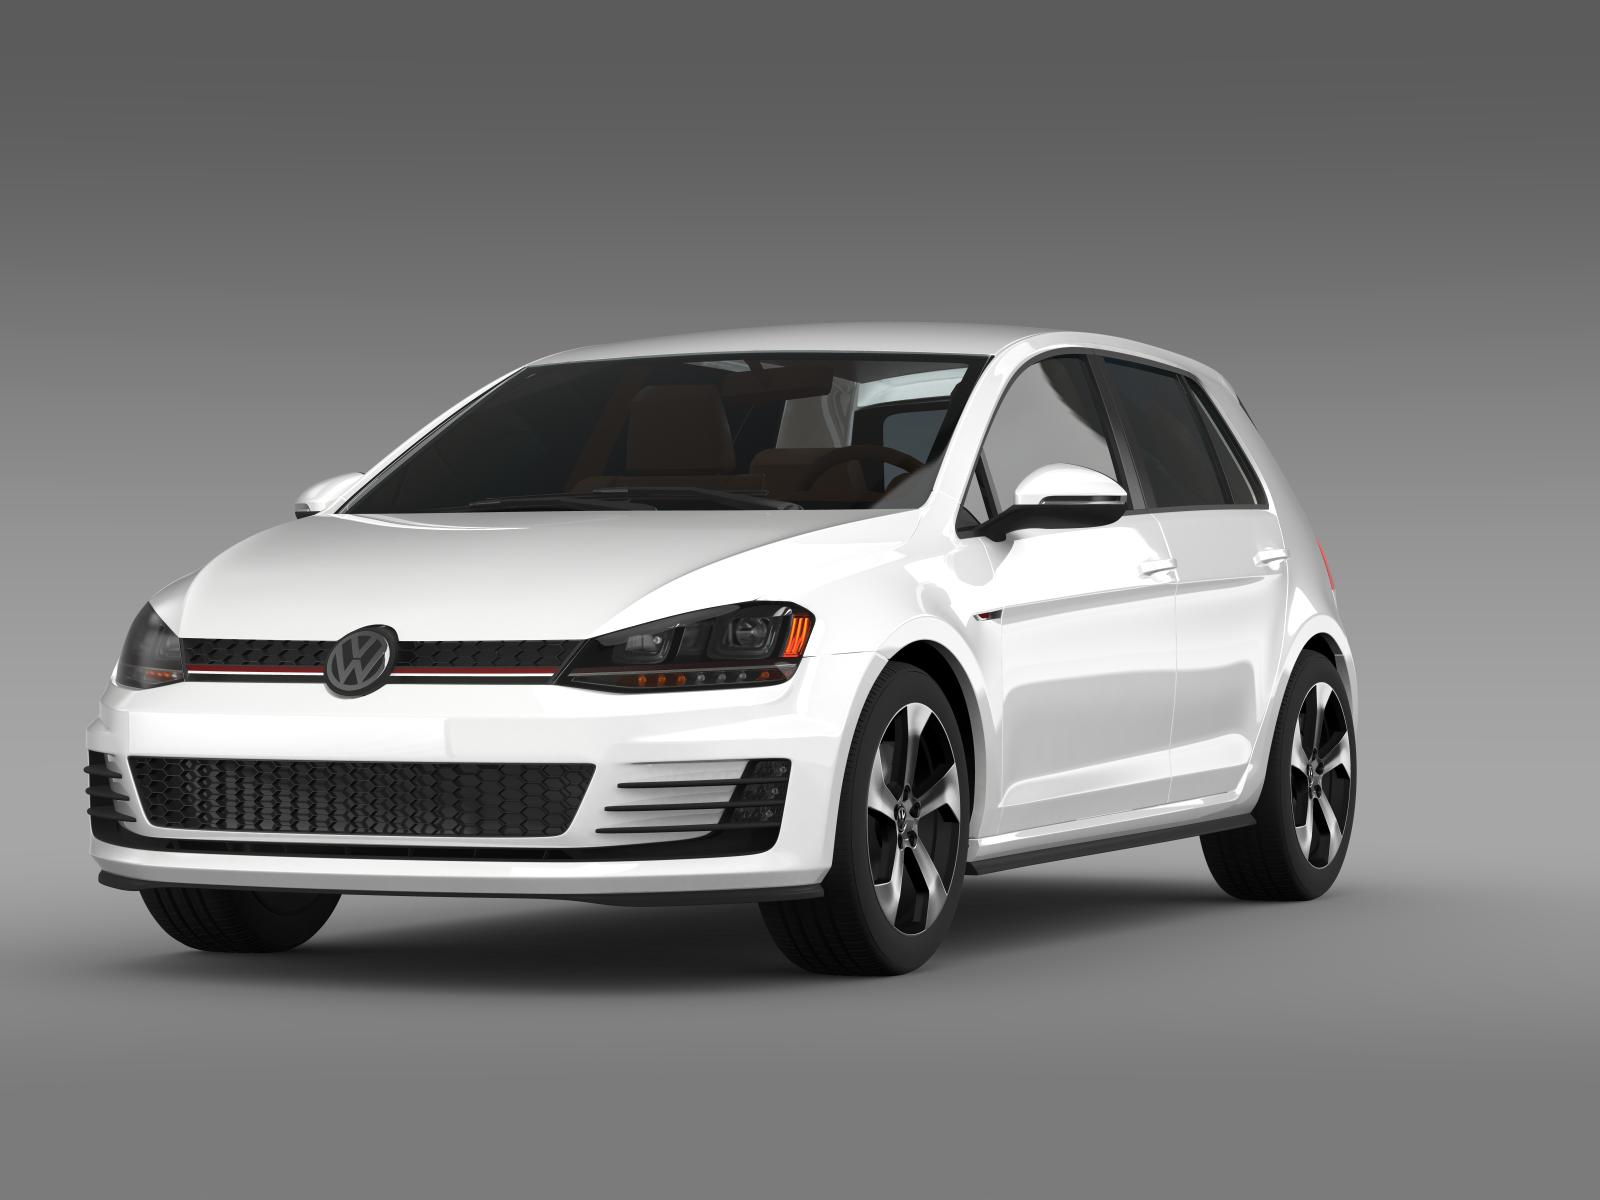 2015 volkswagen golf gti 5 door 3d model 3ds max fbx c4d lwo ma mb hrc xsi obj 164671